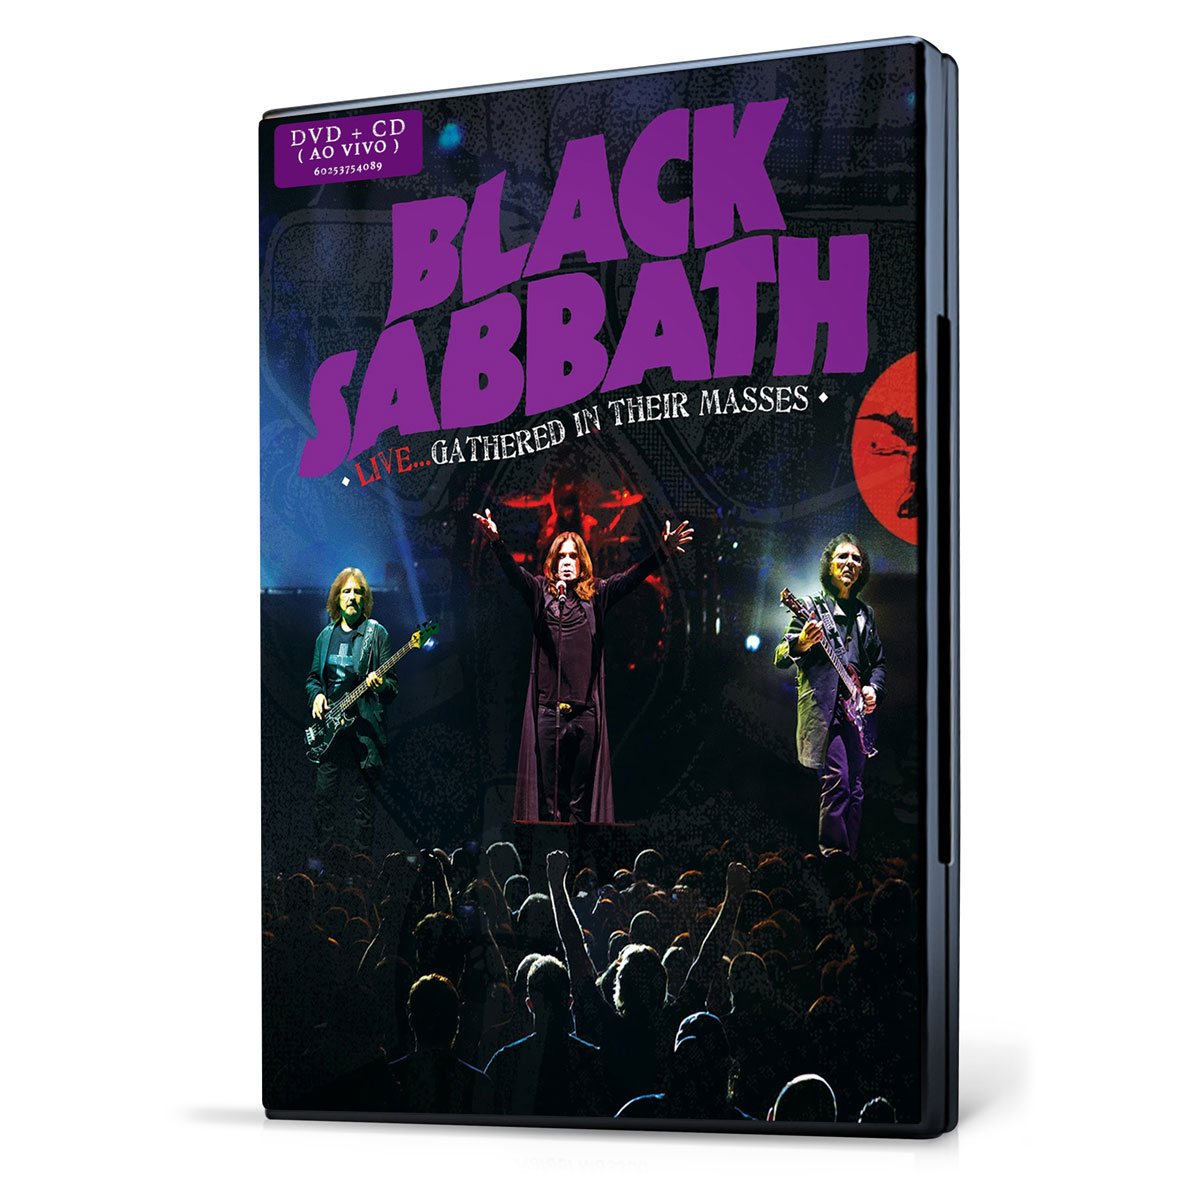 Kit CD + DVD Black Sabbath Live... Gathered in Their Masses